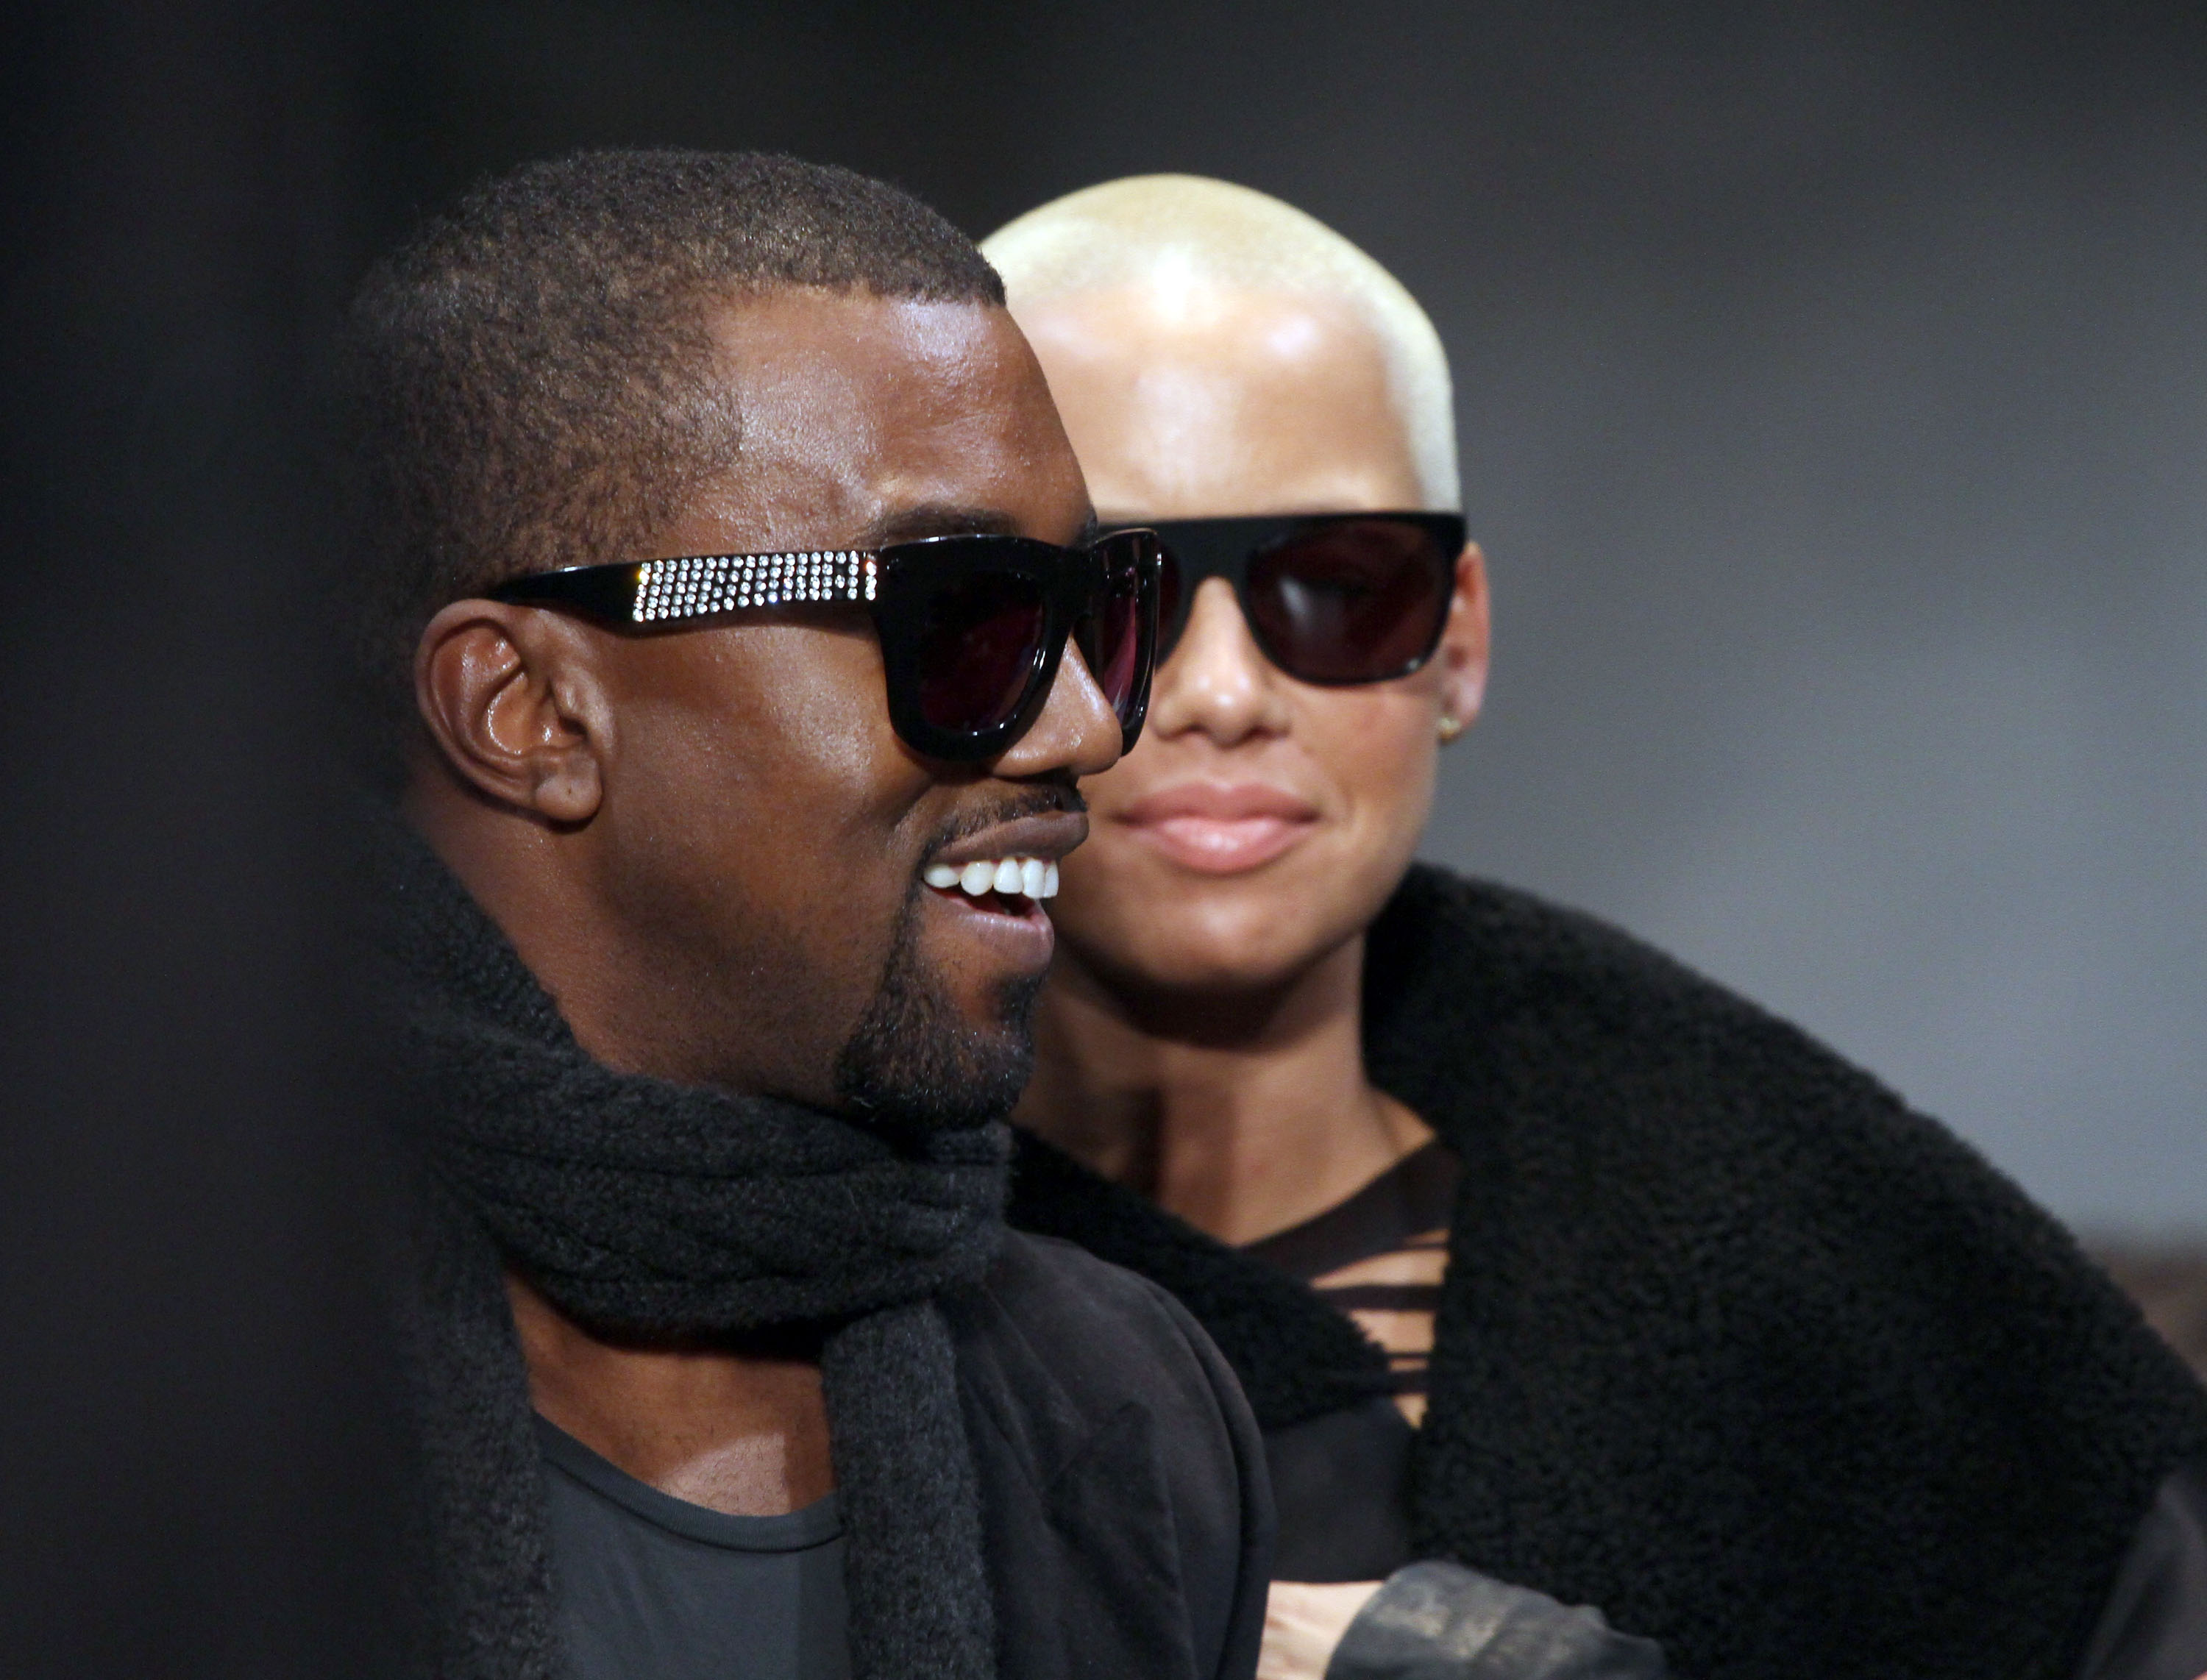 Kanye West and Amber Rose attend the Cerruti fashion show during Paris Menswear Fashion Week Autumn/Winter 2010 at Palais de Tokyo on January 22, 2010 in Paris, France.